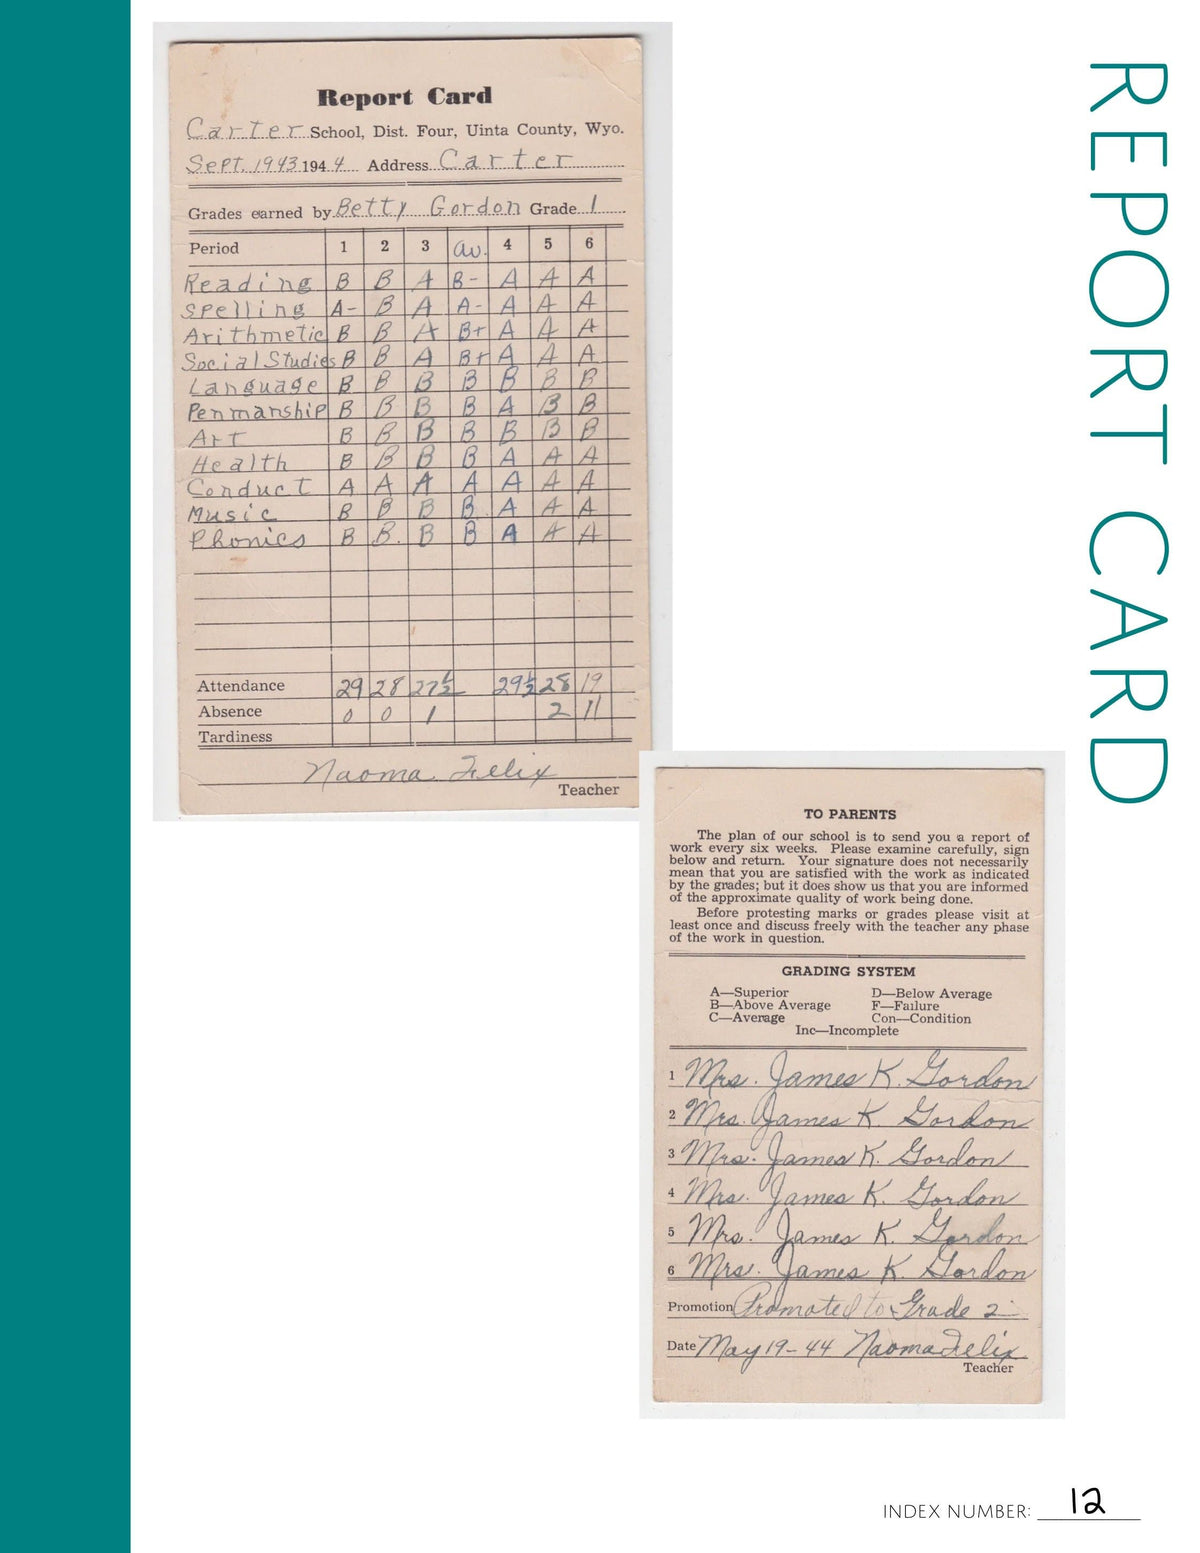 Report Card: Printable Genealogy Form (Digital Download)